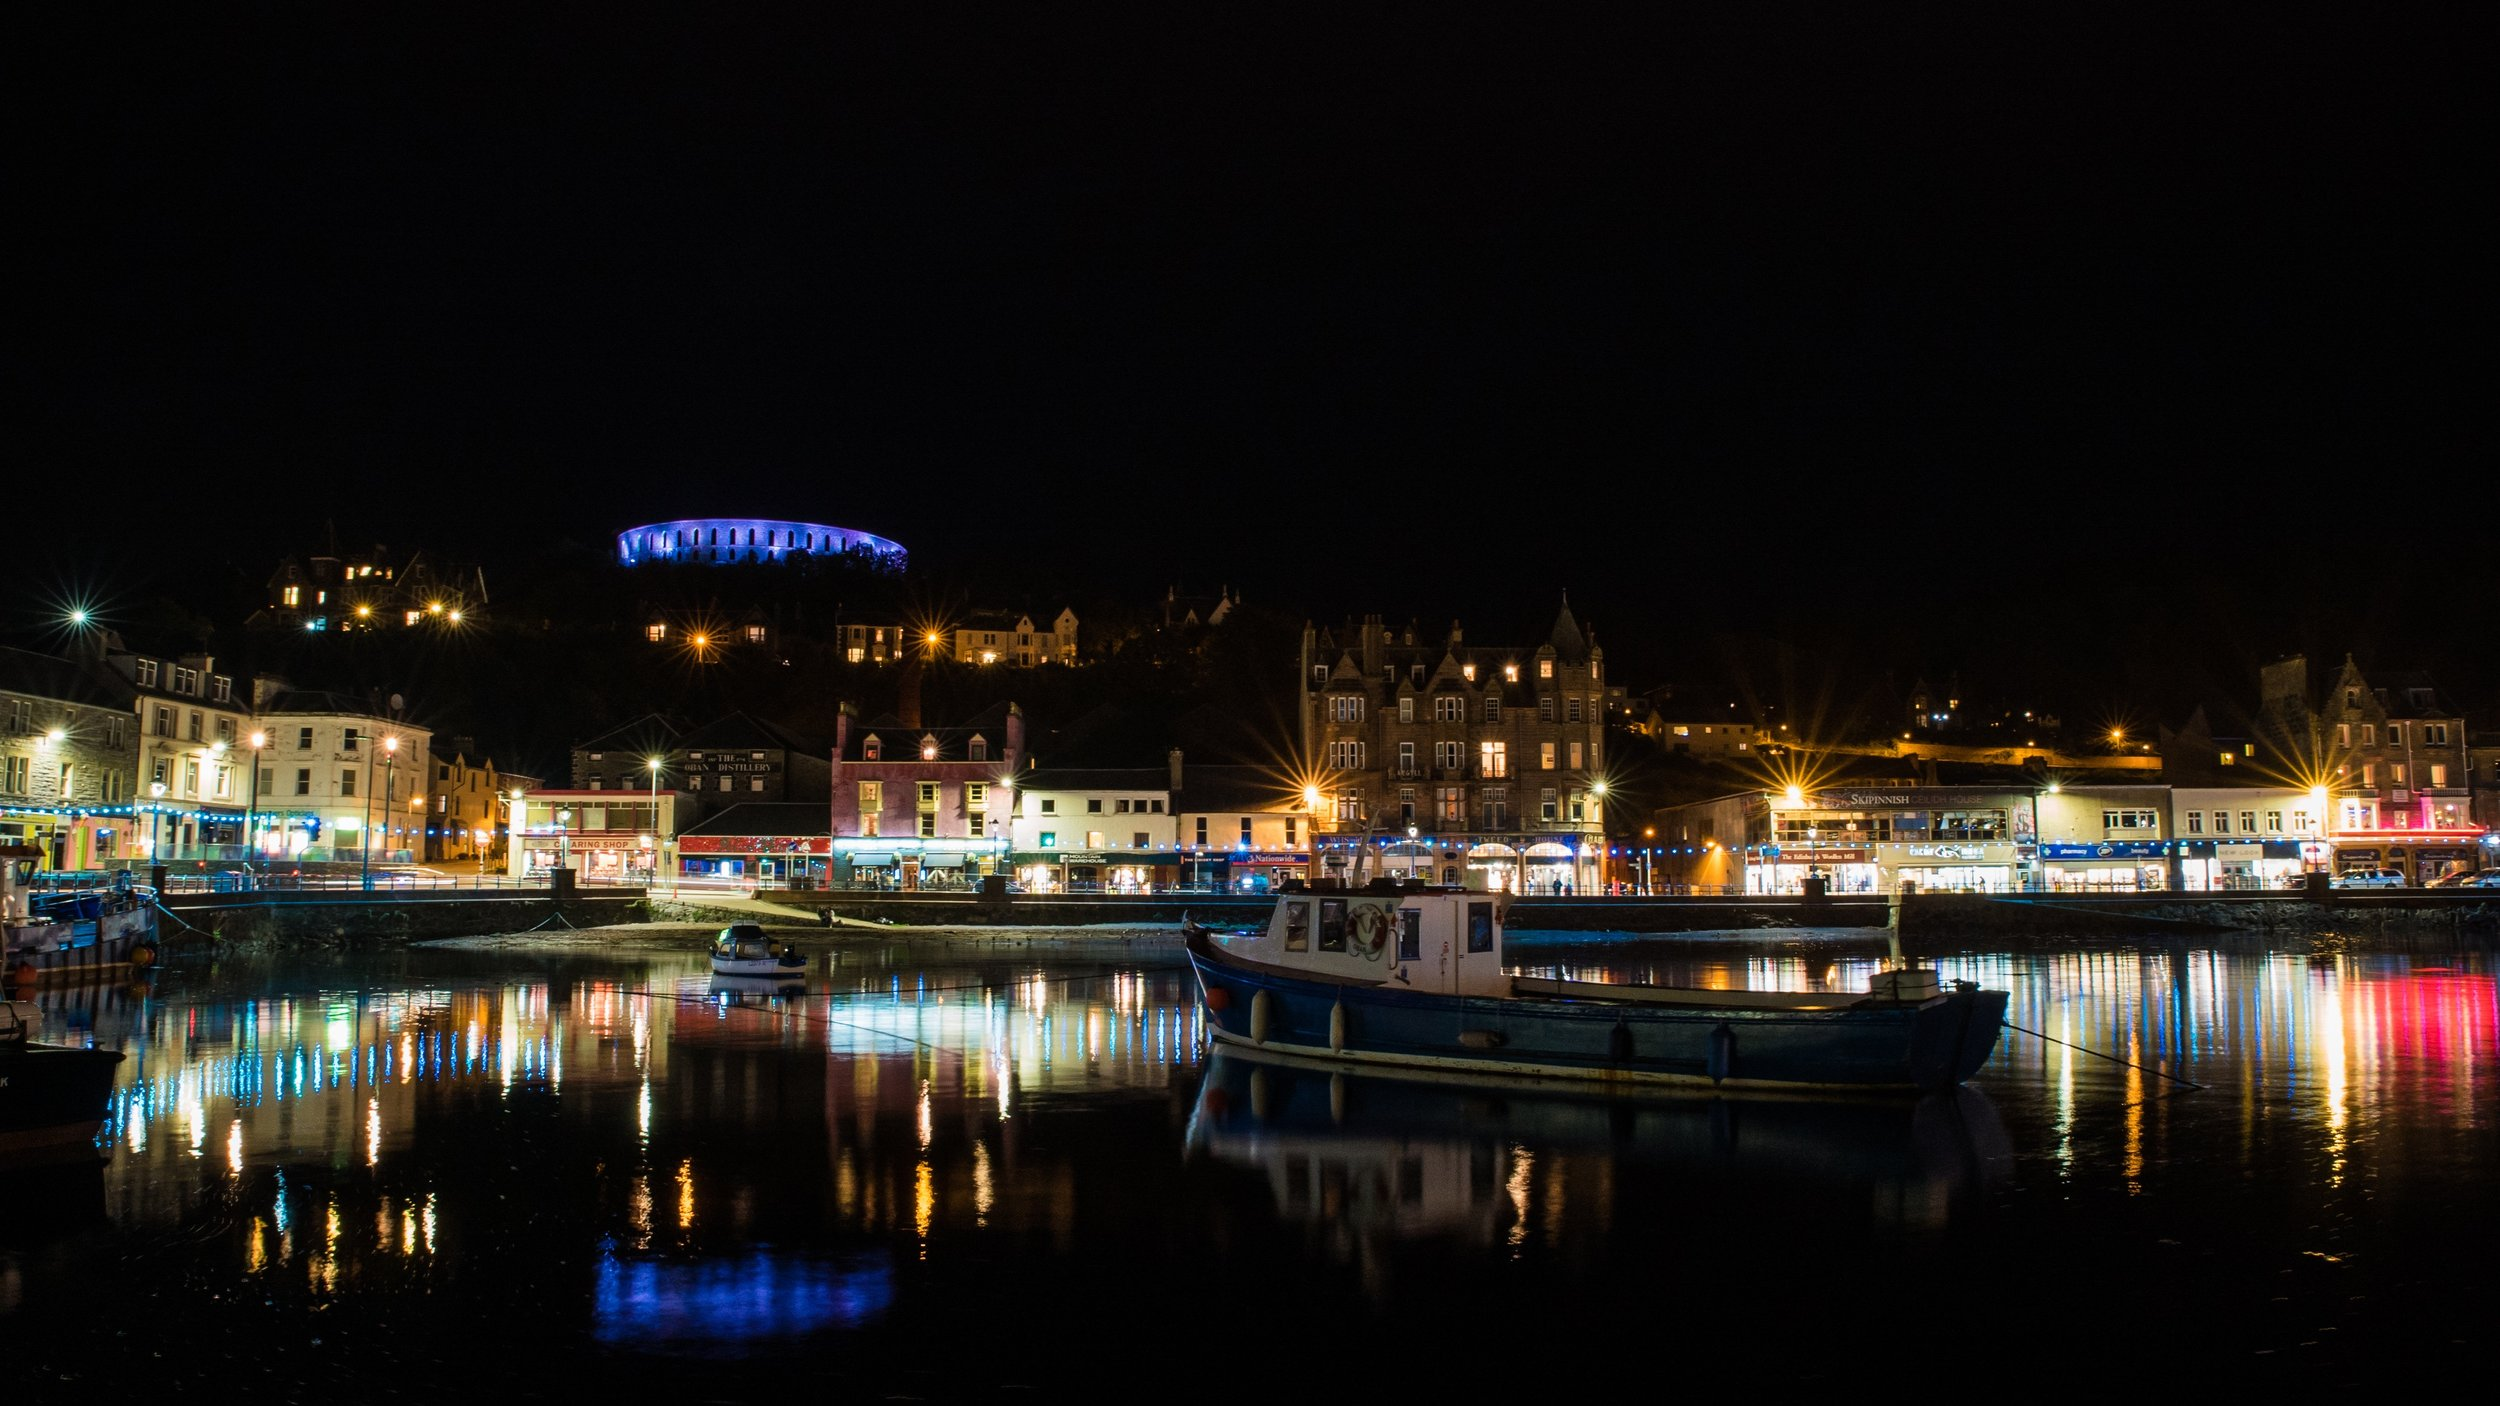 Visit Oban & The Western Isles - The delightful seaside town is less than an hour's drive away from House in the Wood. Enjoy the freshest seafood, visit the distillery or check out some live music, Oban has a lot to offer as well as being the gateway to the Western Isles.